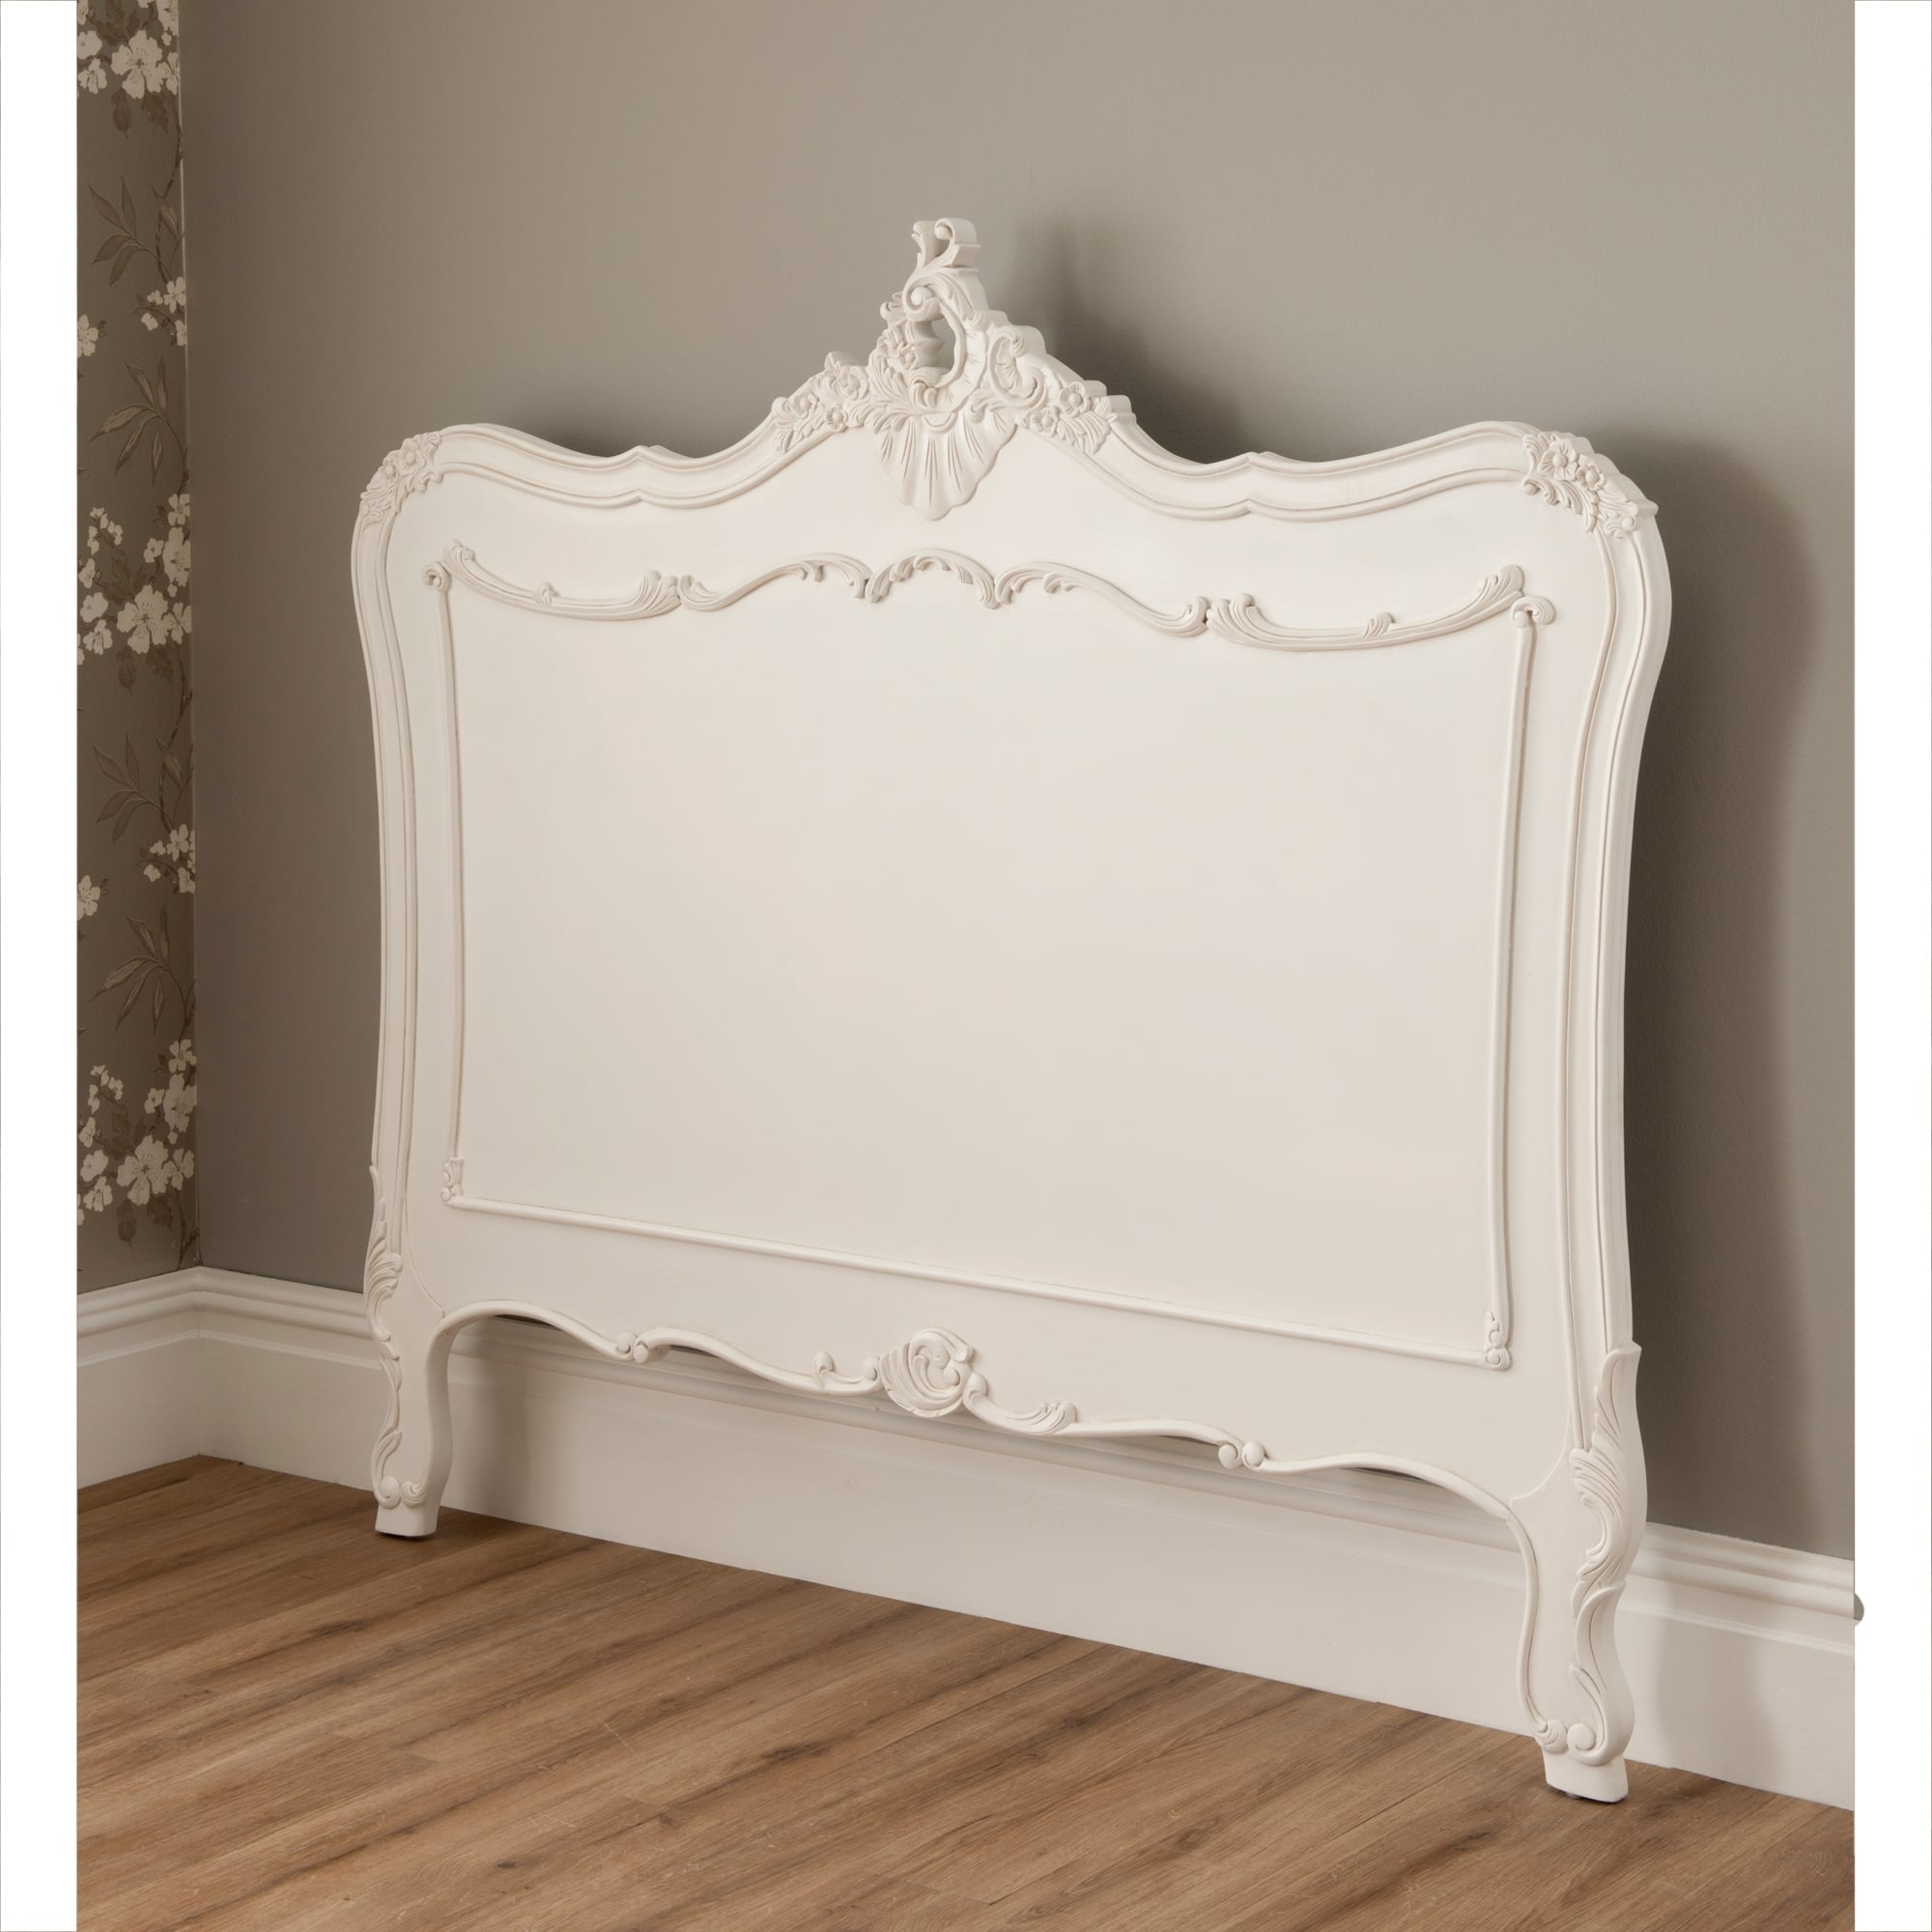 Bedroom Beds Headboards La Rochelle Antique French Style Headboard